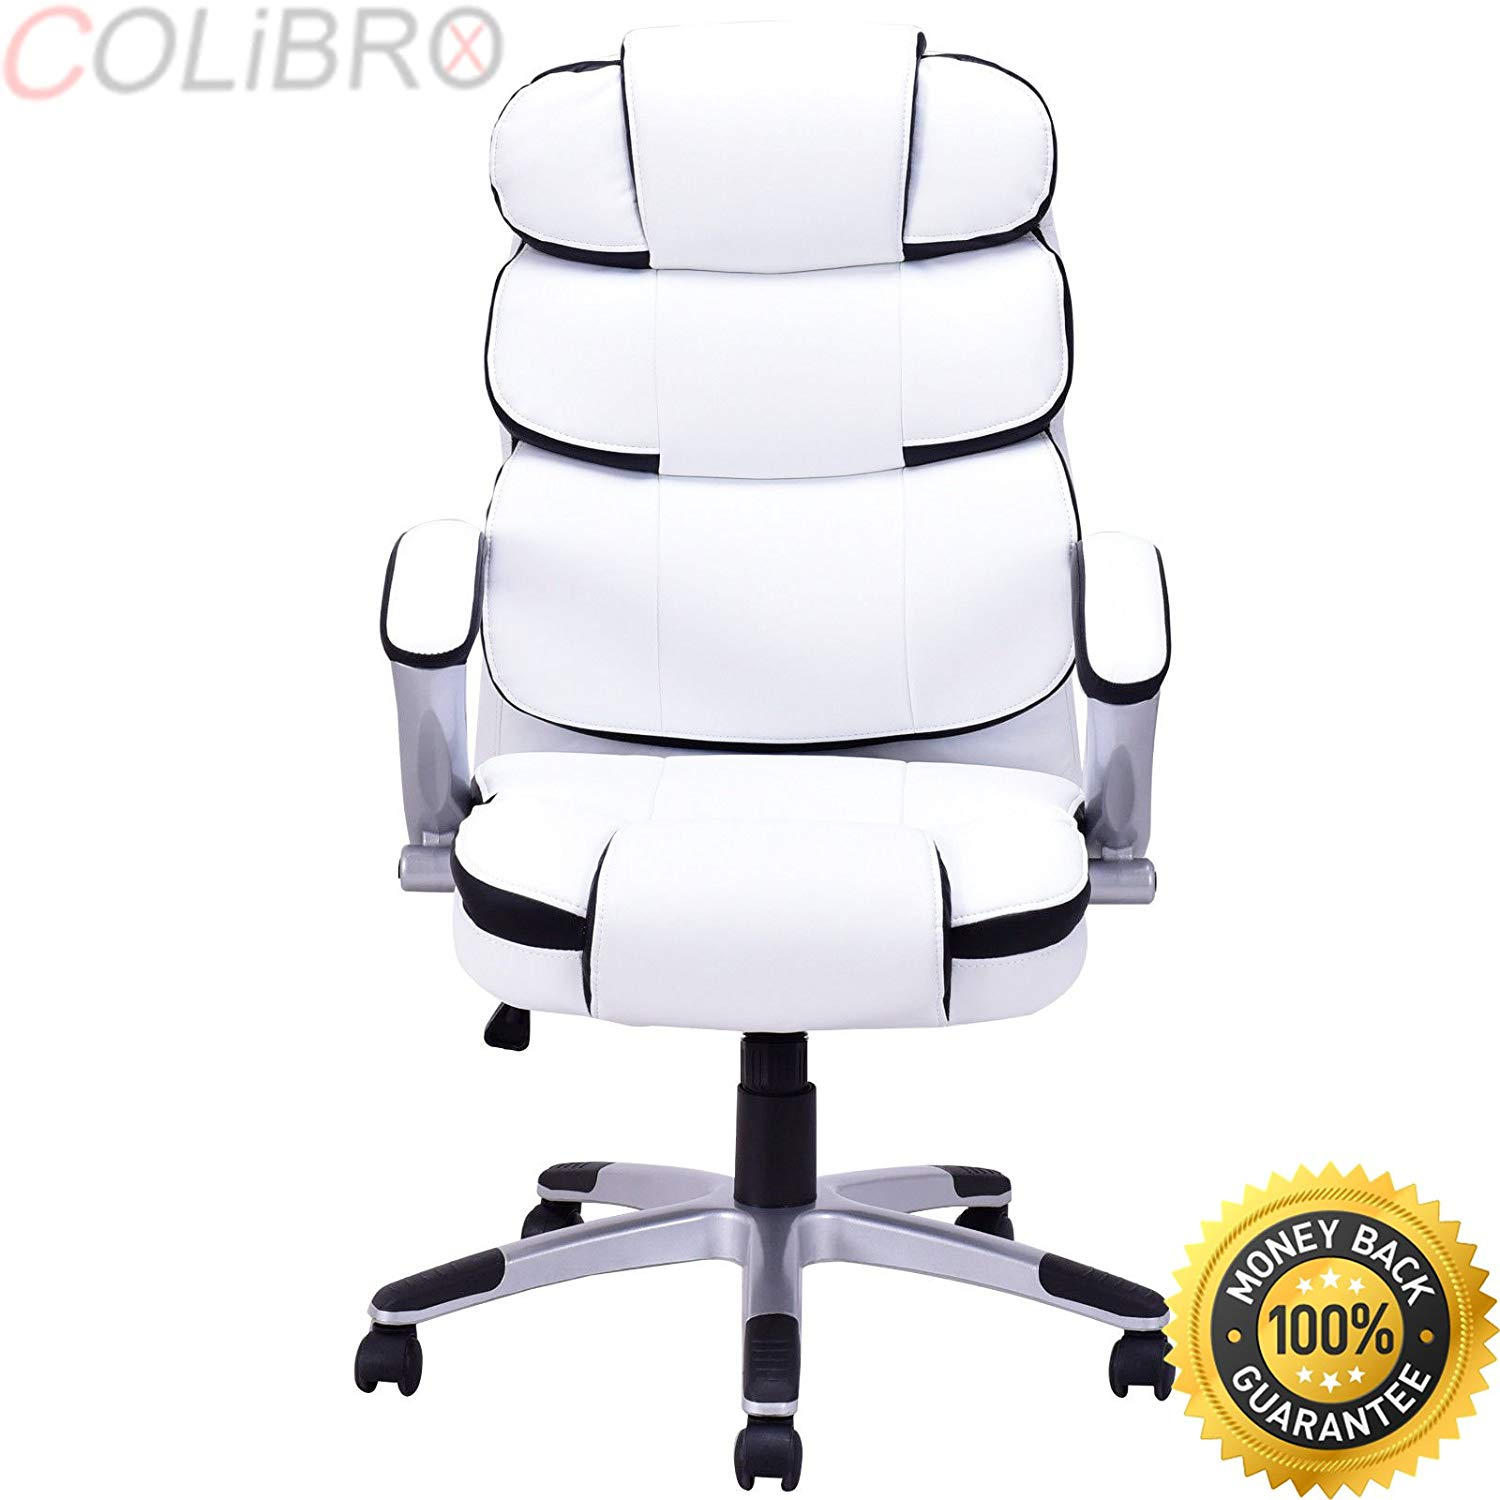 COLIBROX--New Ergonomic PU Leather High Back Executive Computer Desk Task Office Chair. ergonomic pu leather high back executive computer desk task office chair black. high back leather office chair.